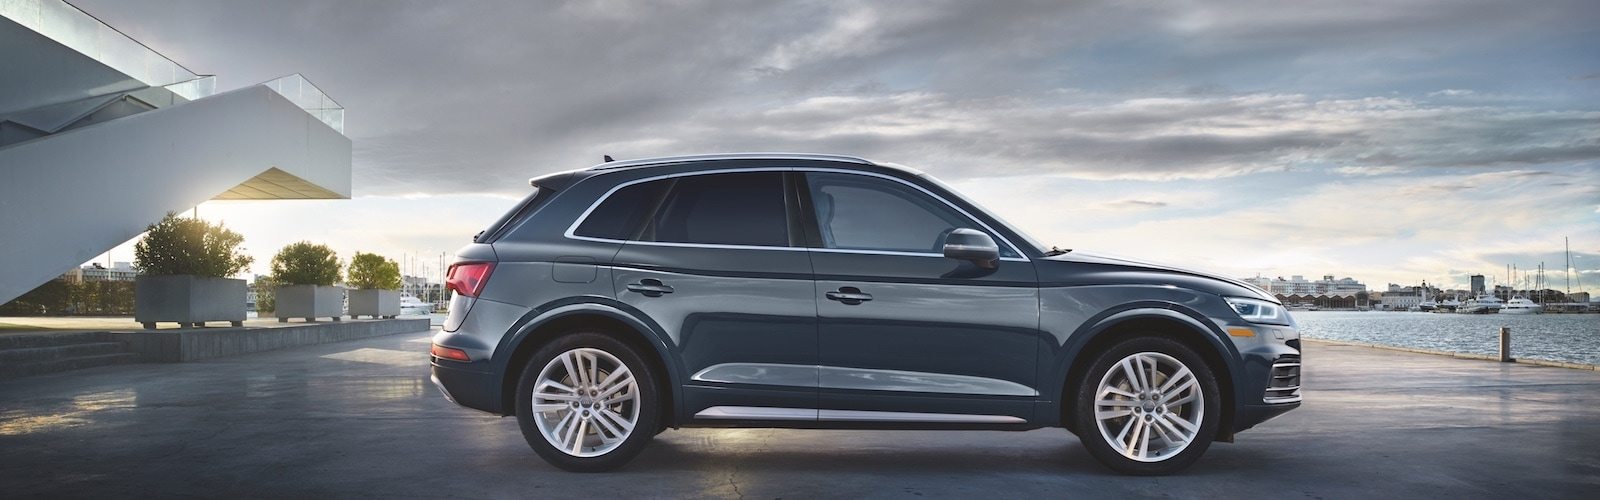 Audi Q5 Lease >> Audi Q5 Lease Great Offers On 2018 Inventory Not To Be Missed